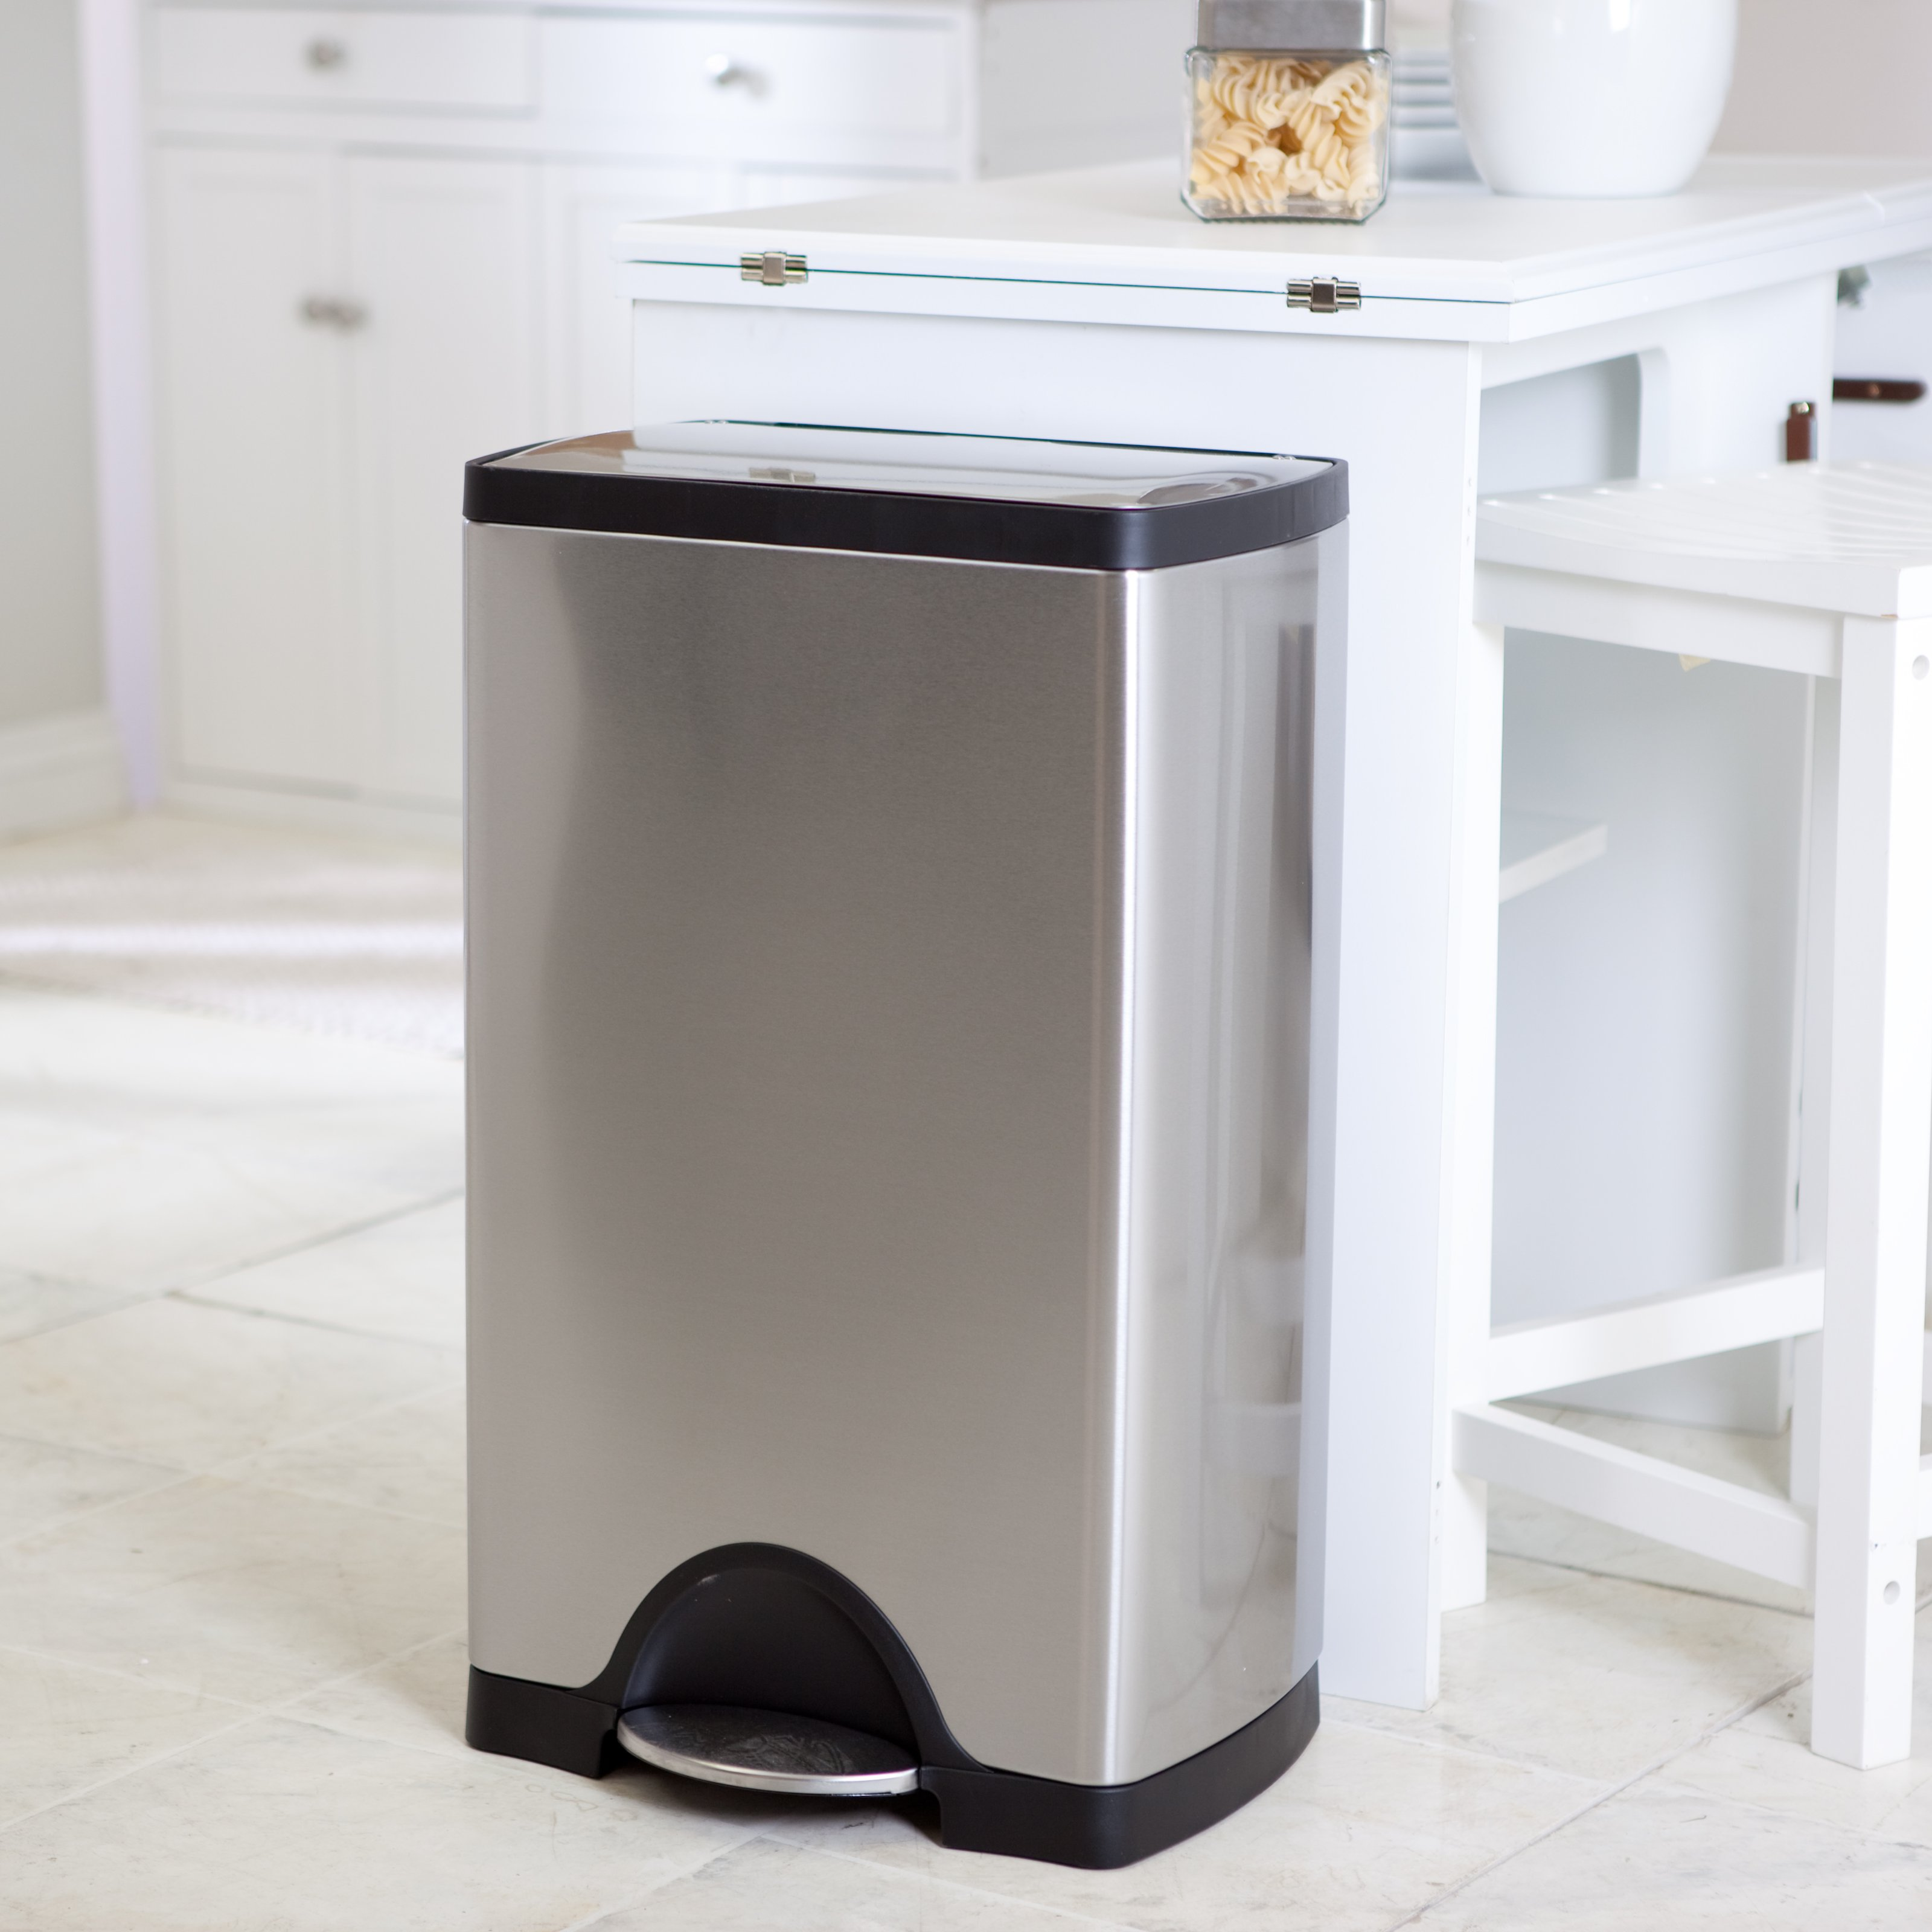 Stainless kitchen trash can photo - 1